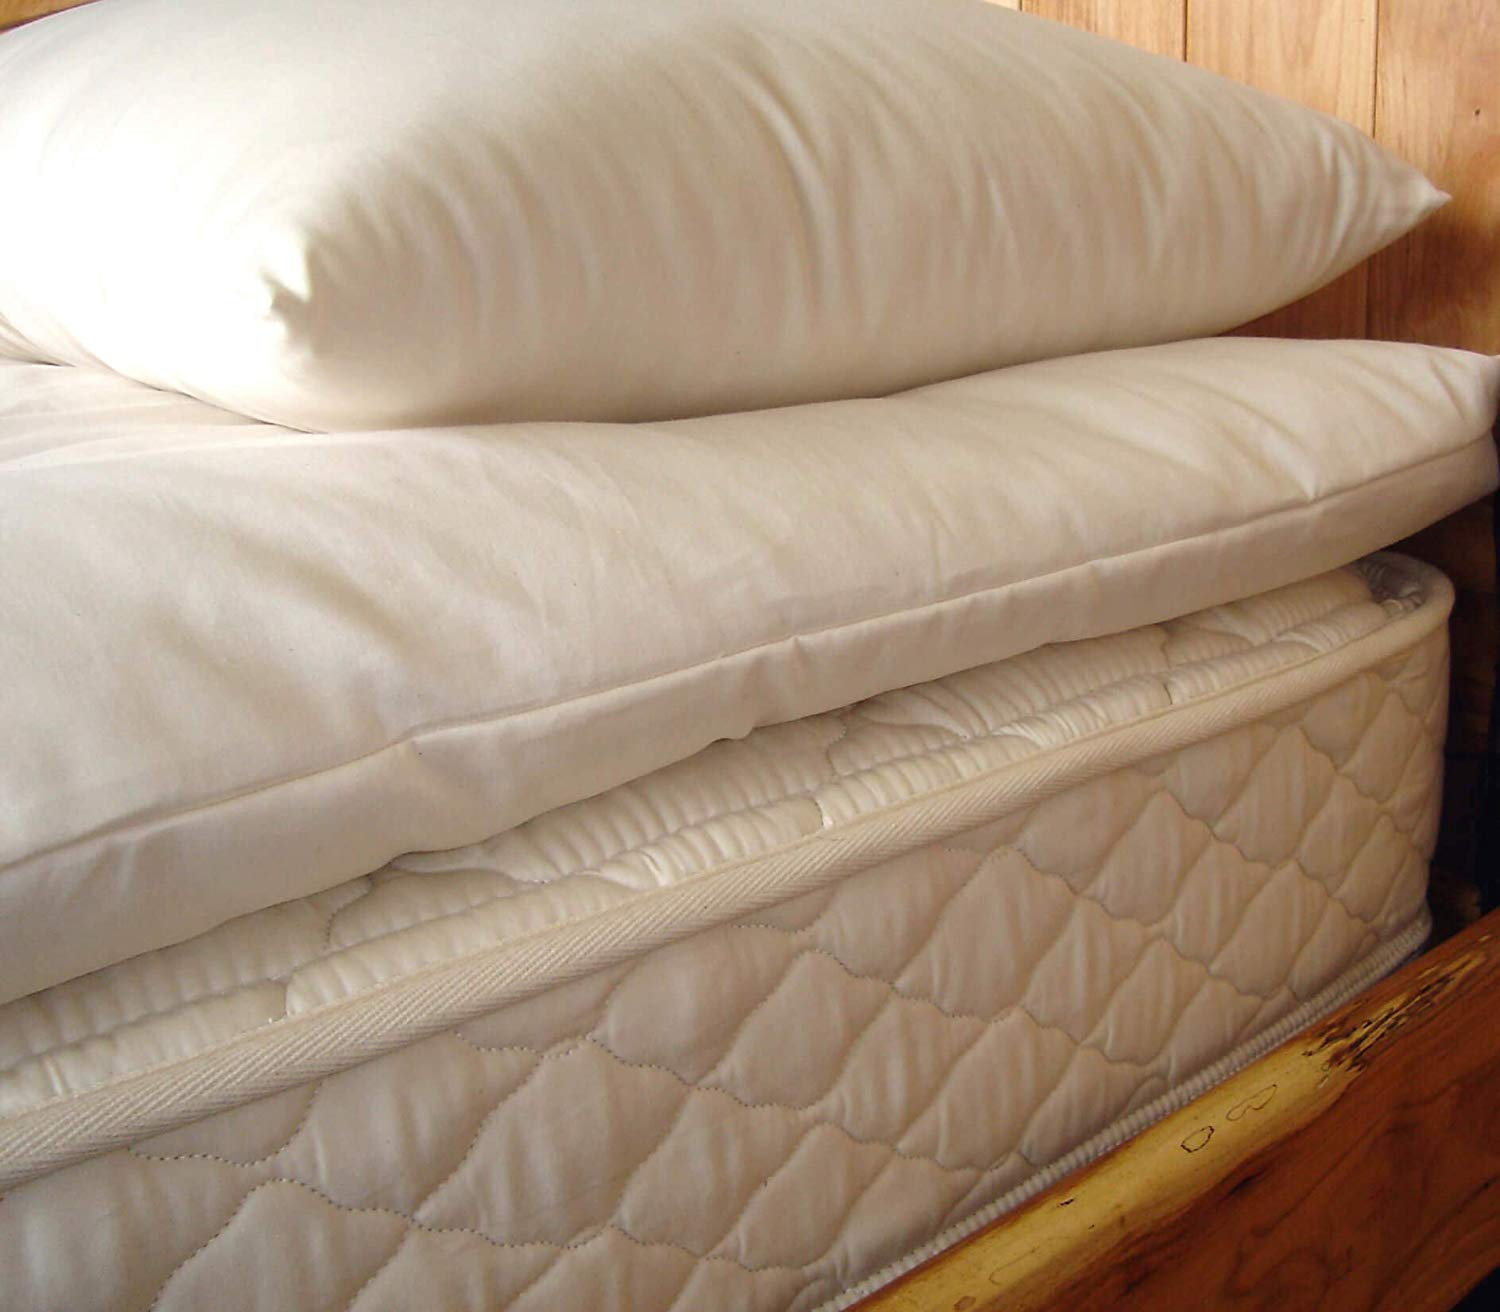 Holy Lamb Organics Wool Mattress Topper review by www.dailysleep.org